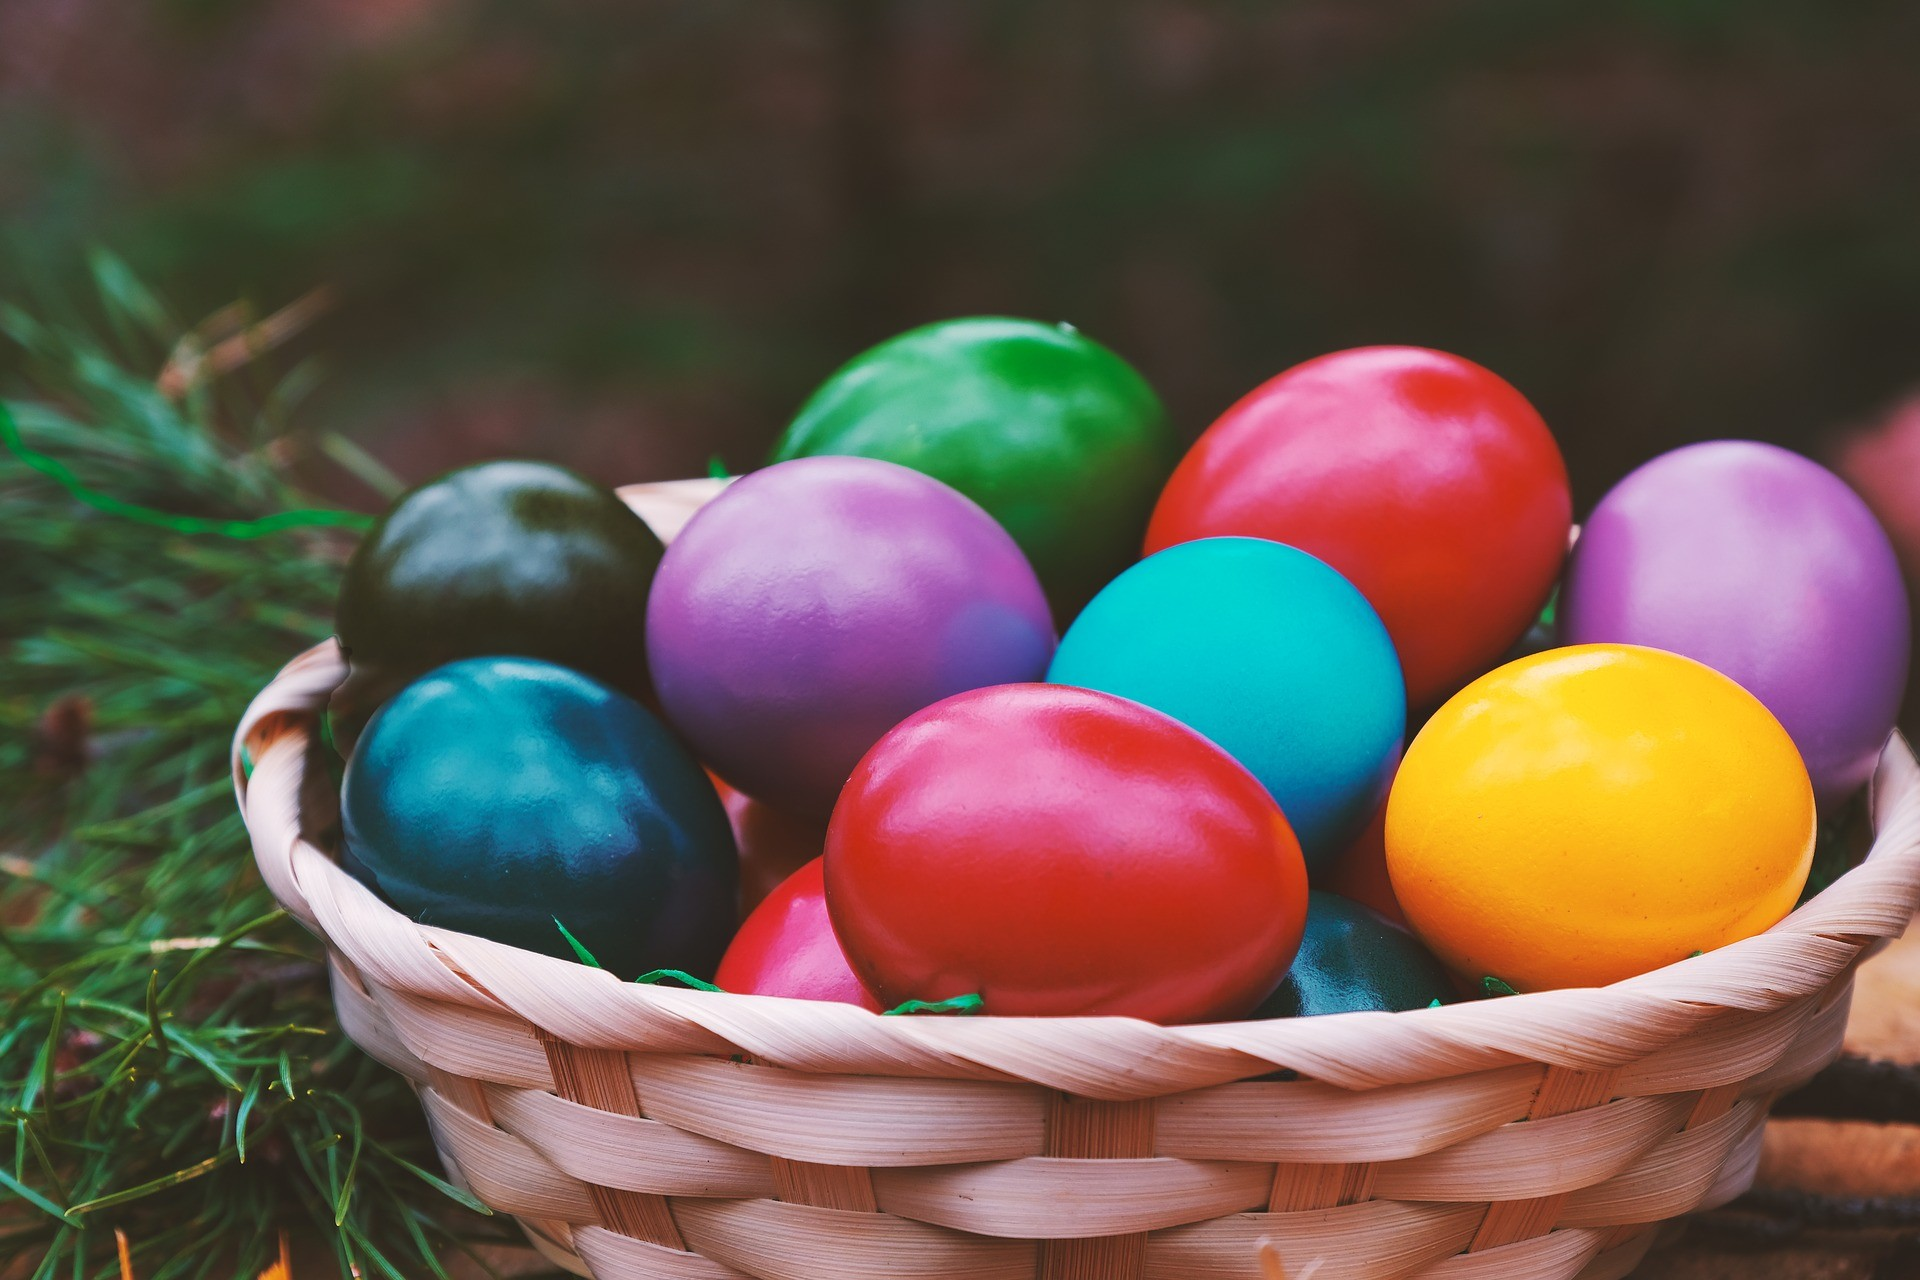 16173907509850611_by_hans3595_easter-4083192_1920